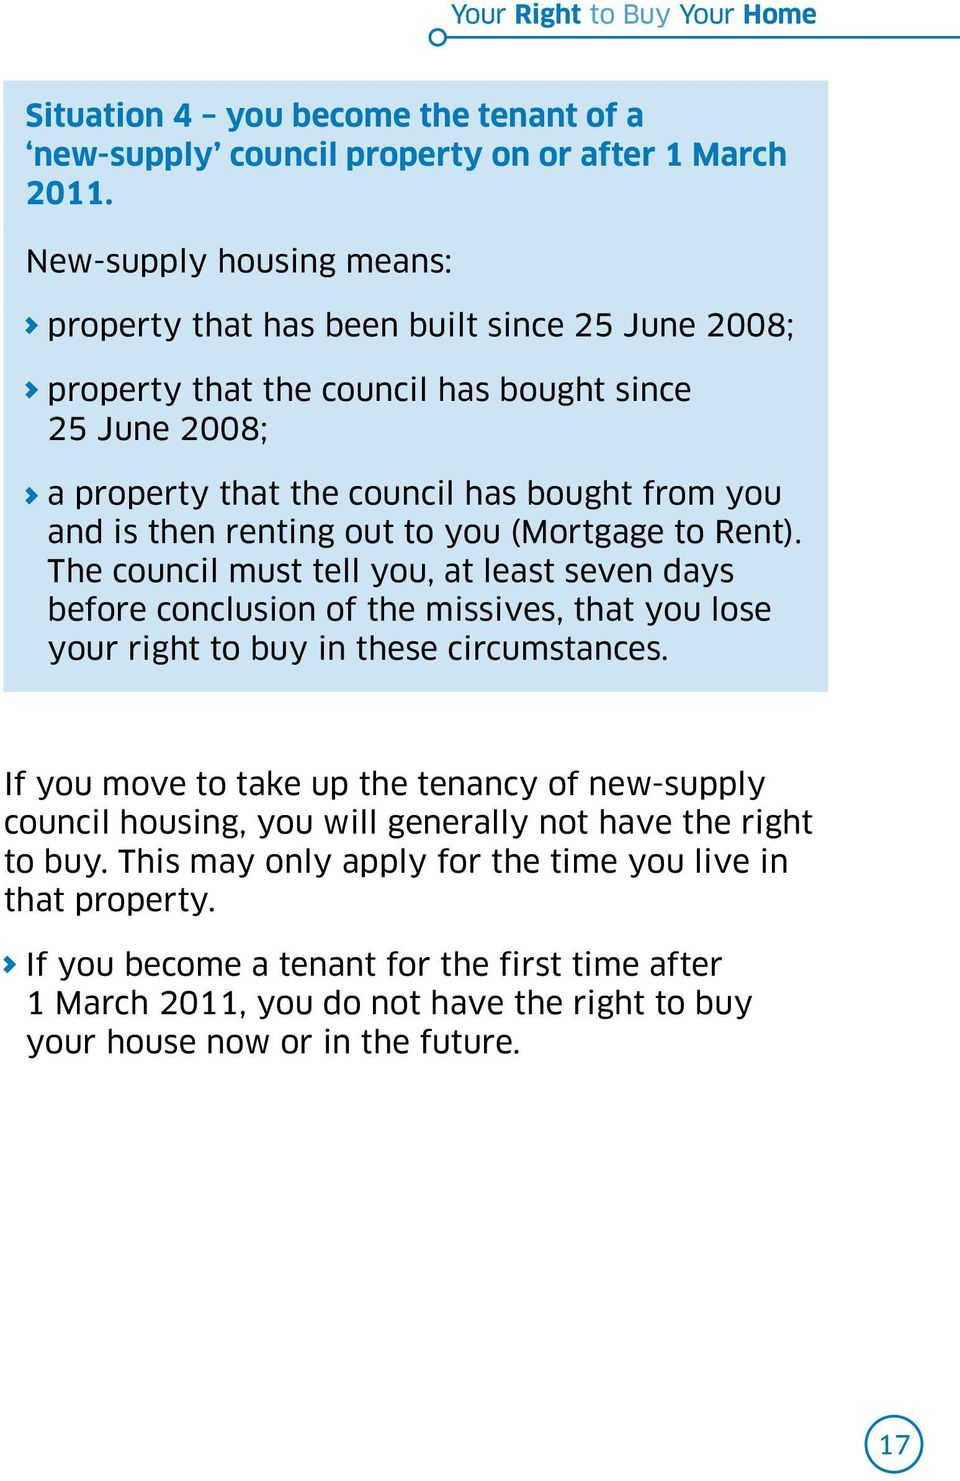 renting out to you (Mortgage to Rent). The council must tell you, at least seven days before conclusion of the missives, that you lose your right to buy in these circumstances.